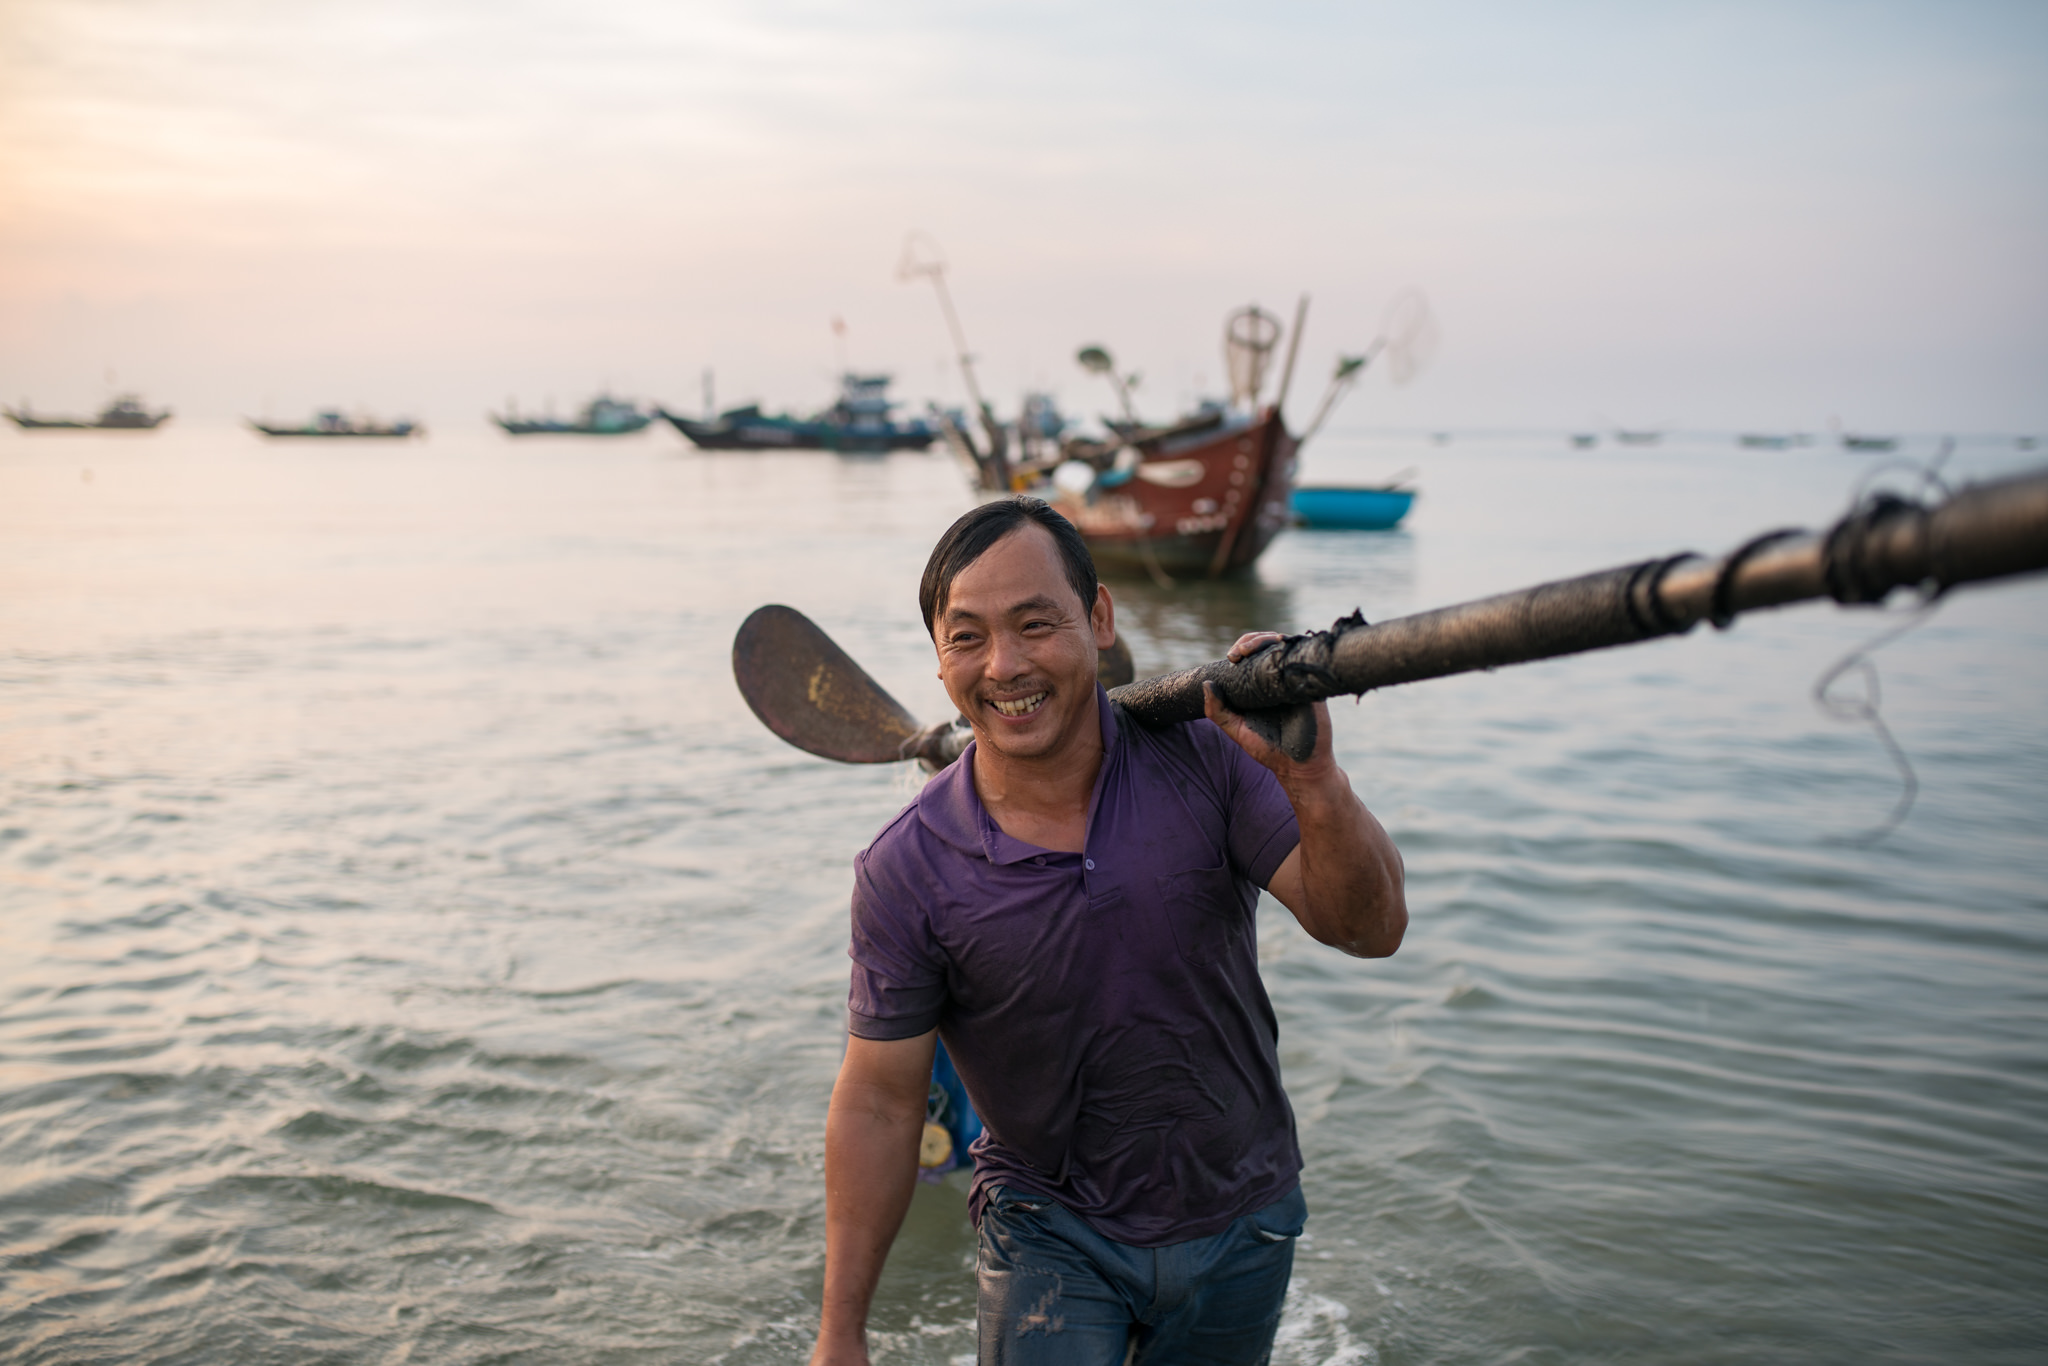 Danang Photographer | Vietnam photographer